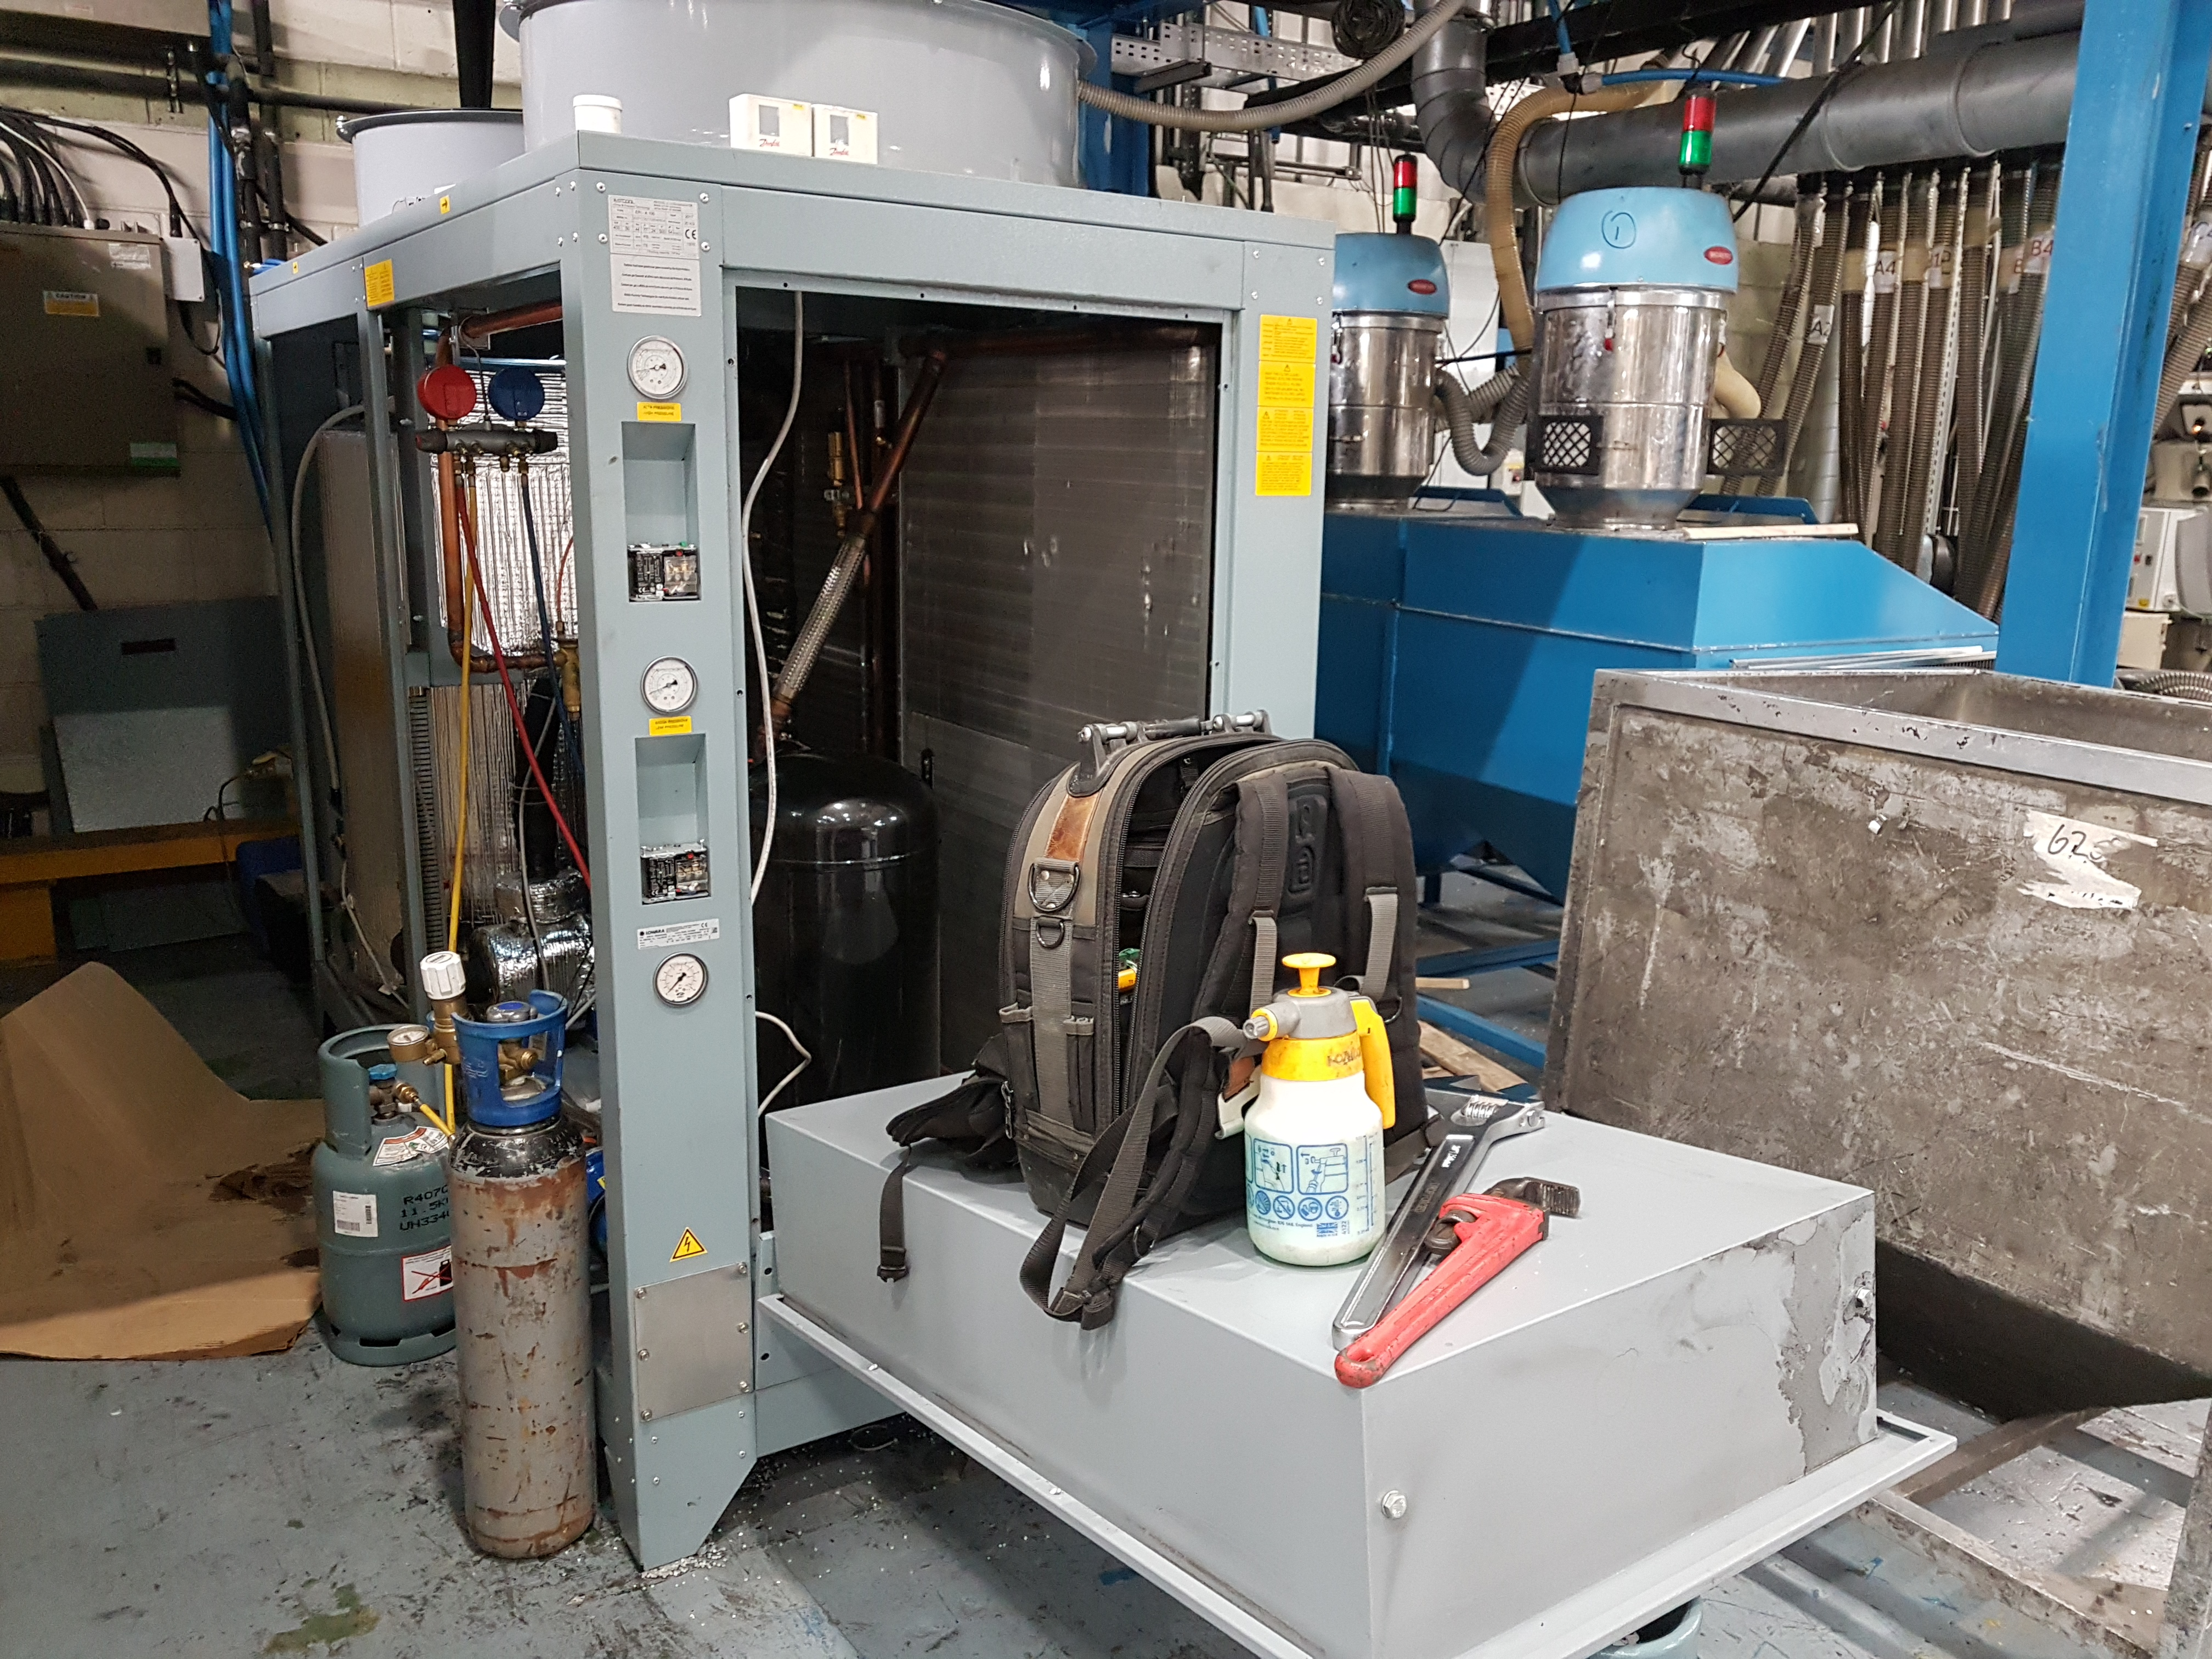 Industrial process chiller being serviced, maintained and repaired with tools on top of the panel